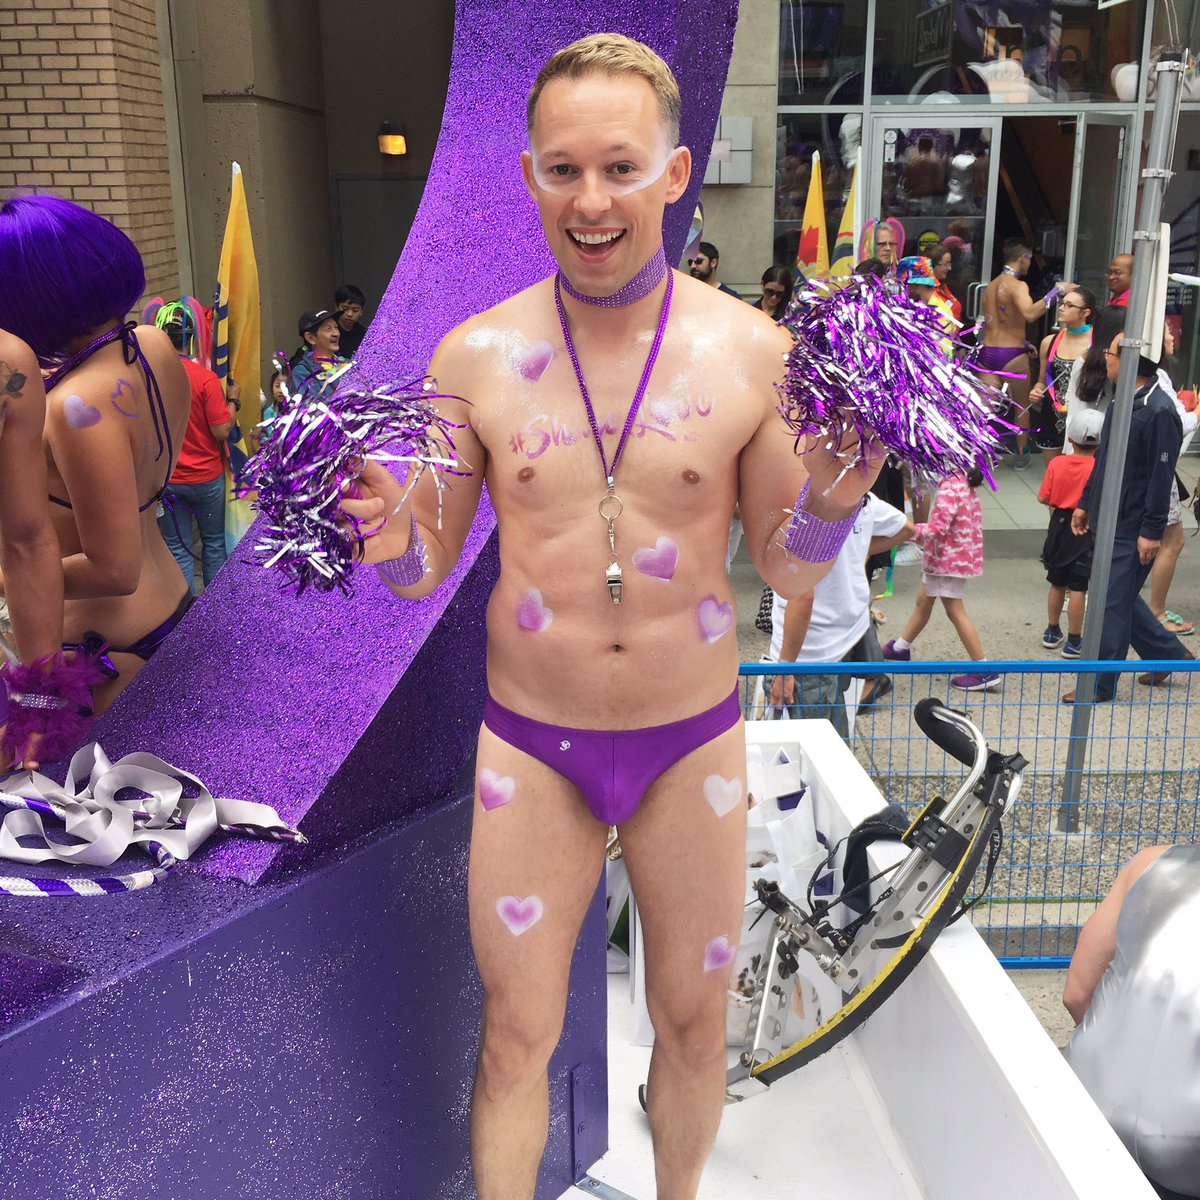 Ready to #ShareLove dancing on the @telus float in the @vancouverpride parade!